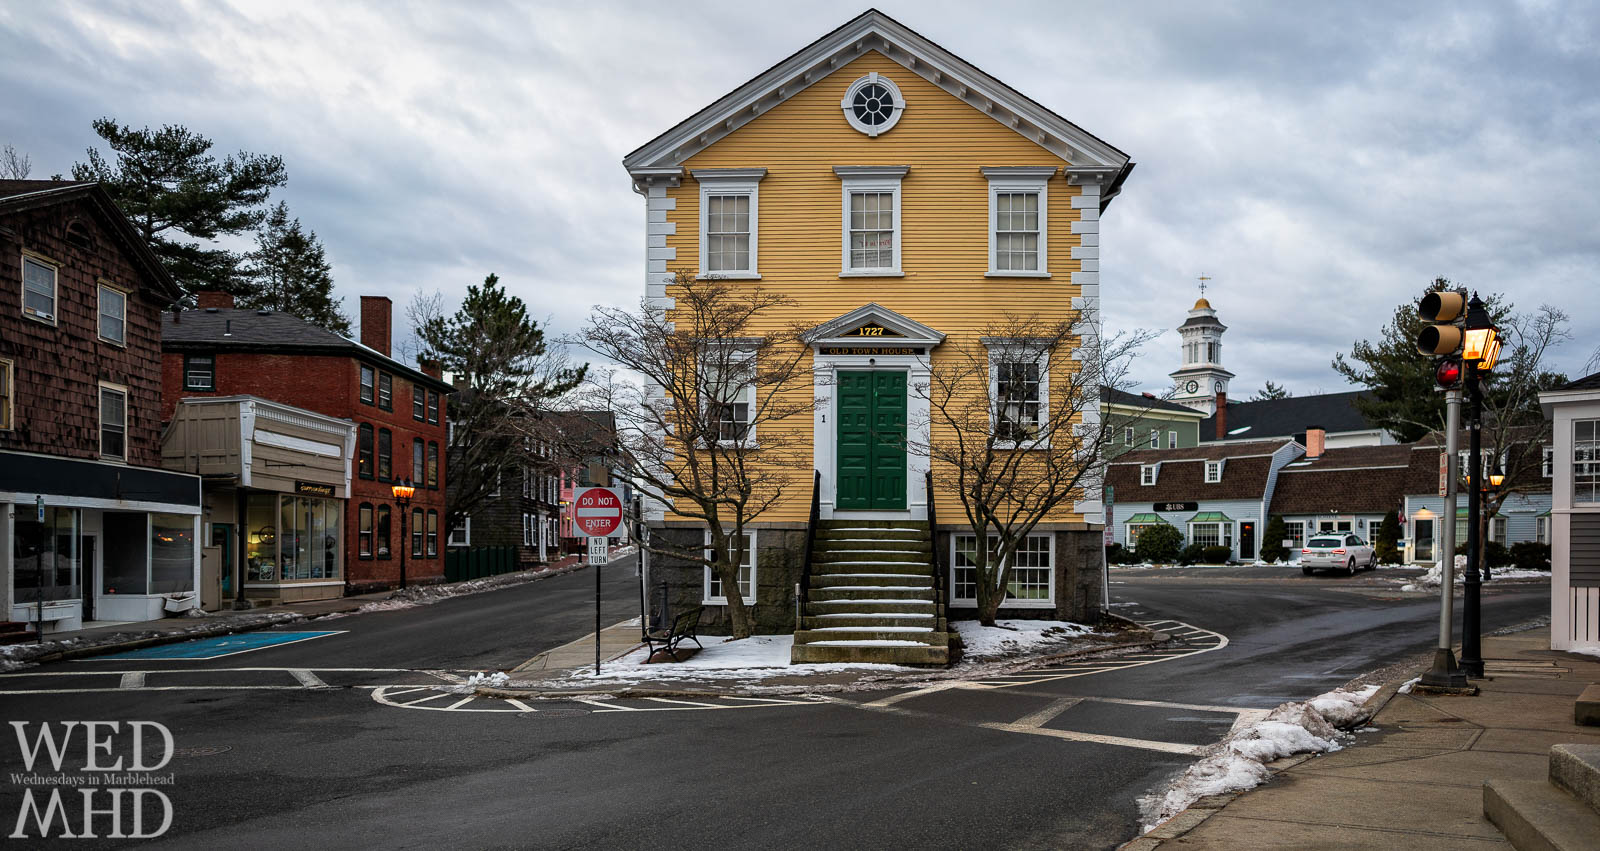 The Old Town House has stood in historic downtown Marblehead since 1727